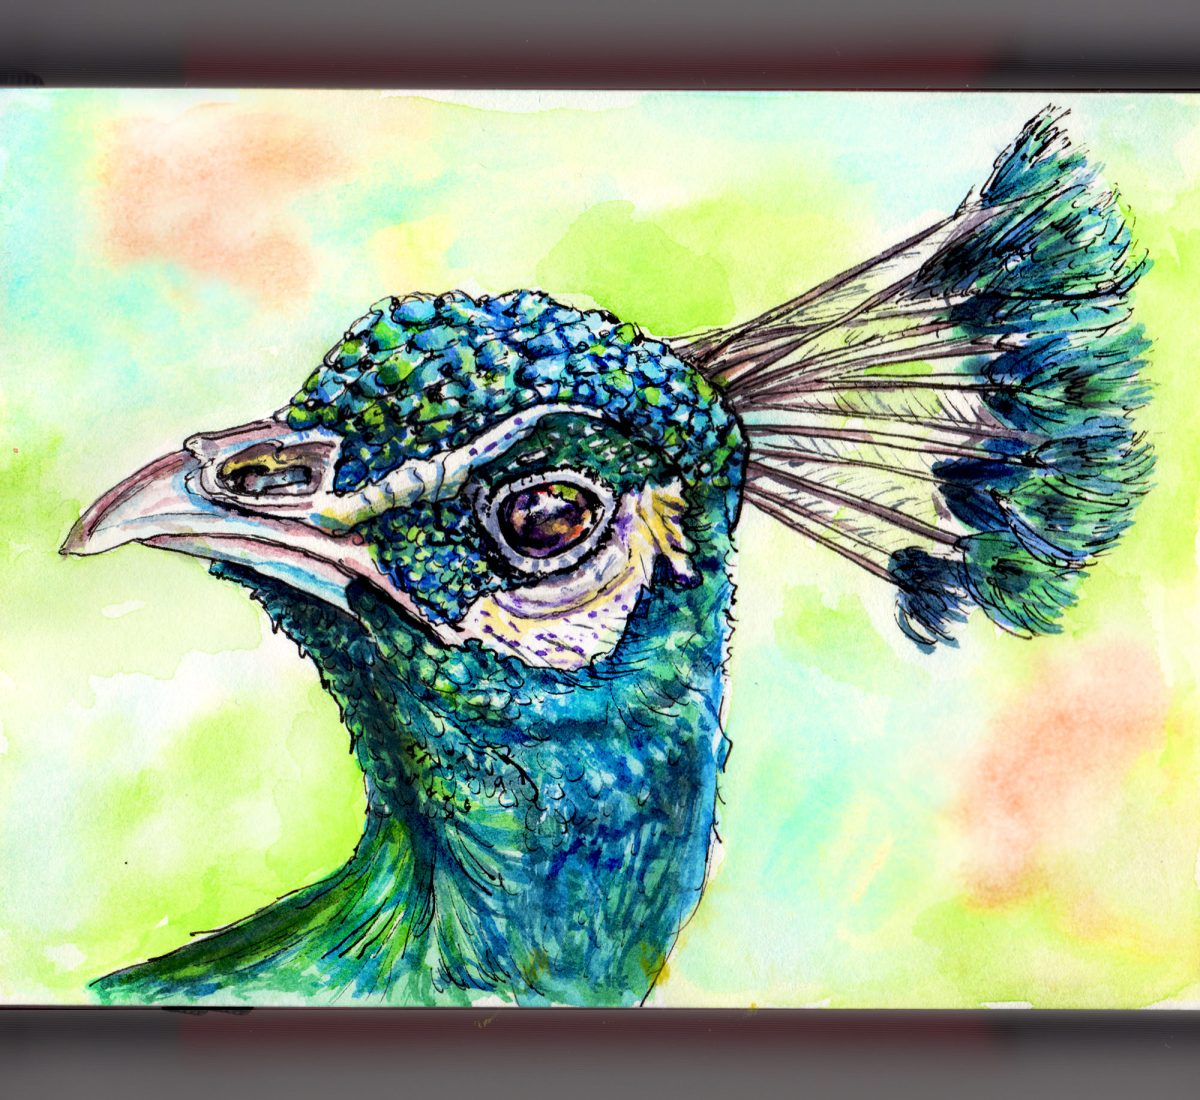 Day 8 - #WorldWatercolorGroup Strut Like A Peacock Head In Profile Watercolor - #doodlewash